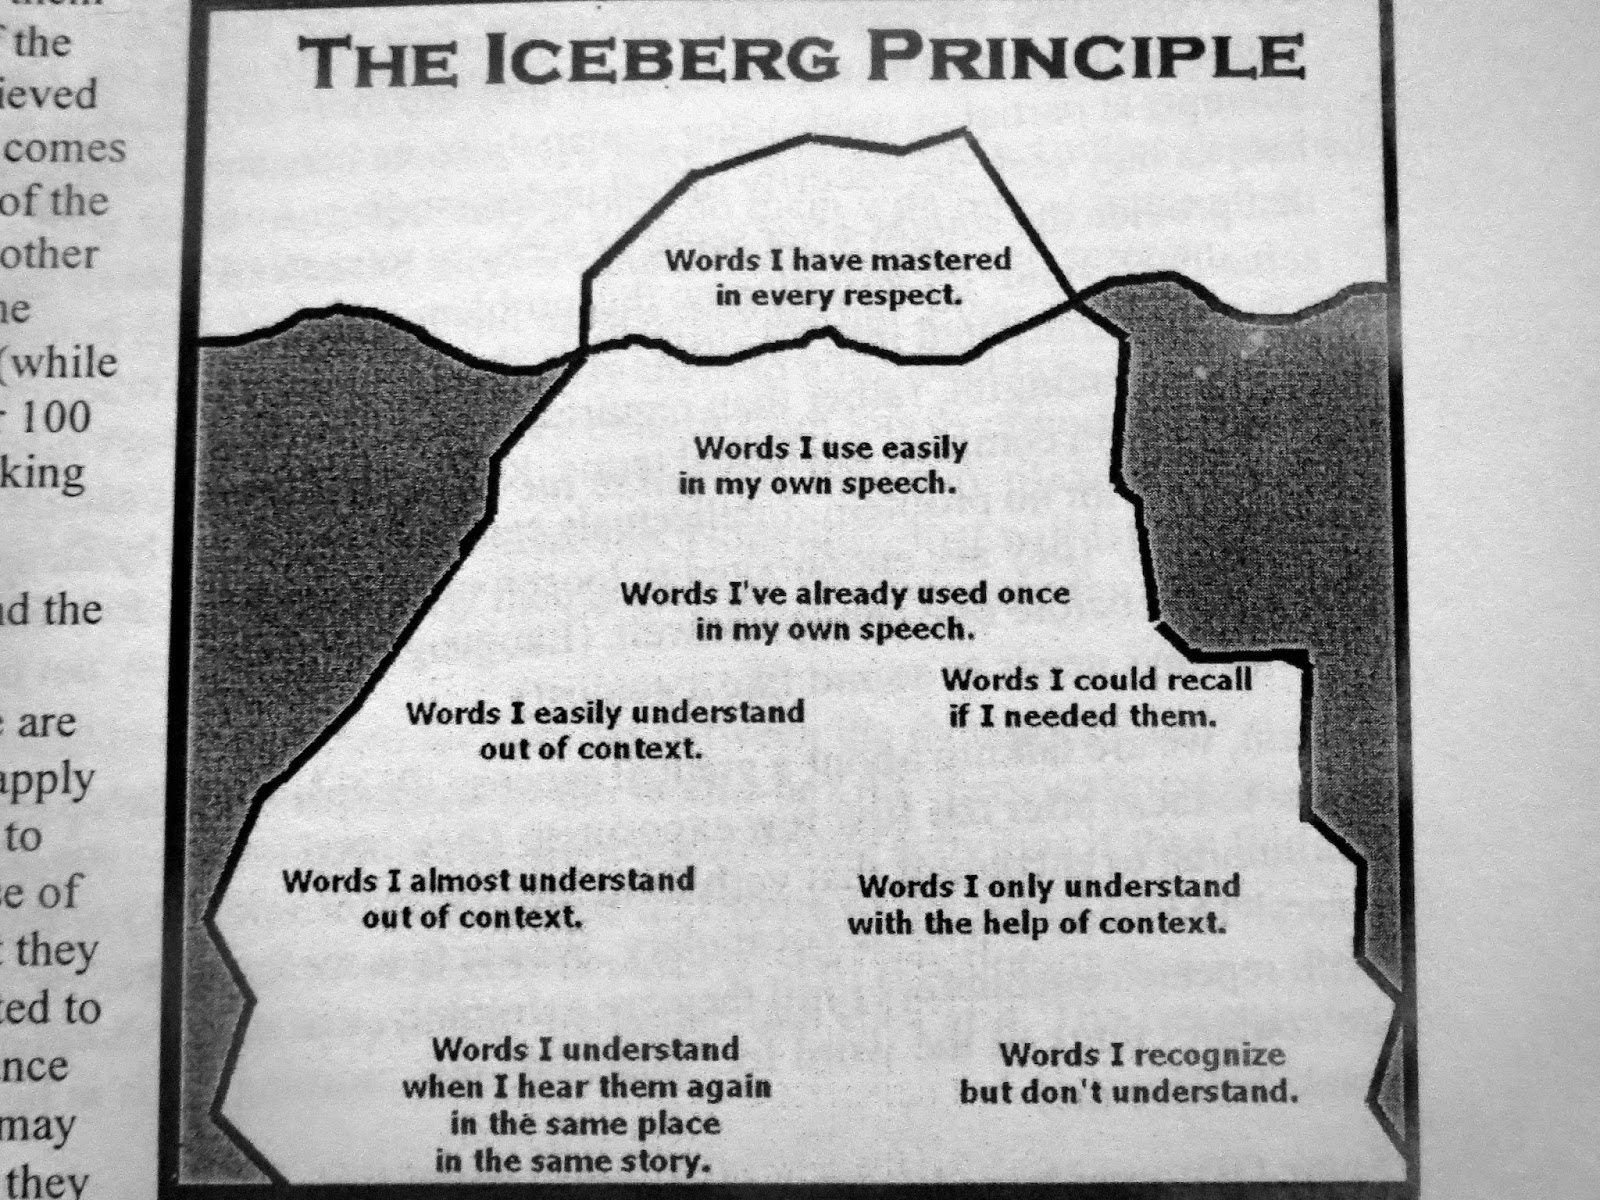 just life along the way gpa intro basically the idea is to get as many words phrases into your iceberg possible then move them steadily up in the iceberg traditional methods would tend